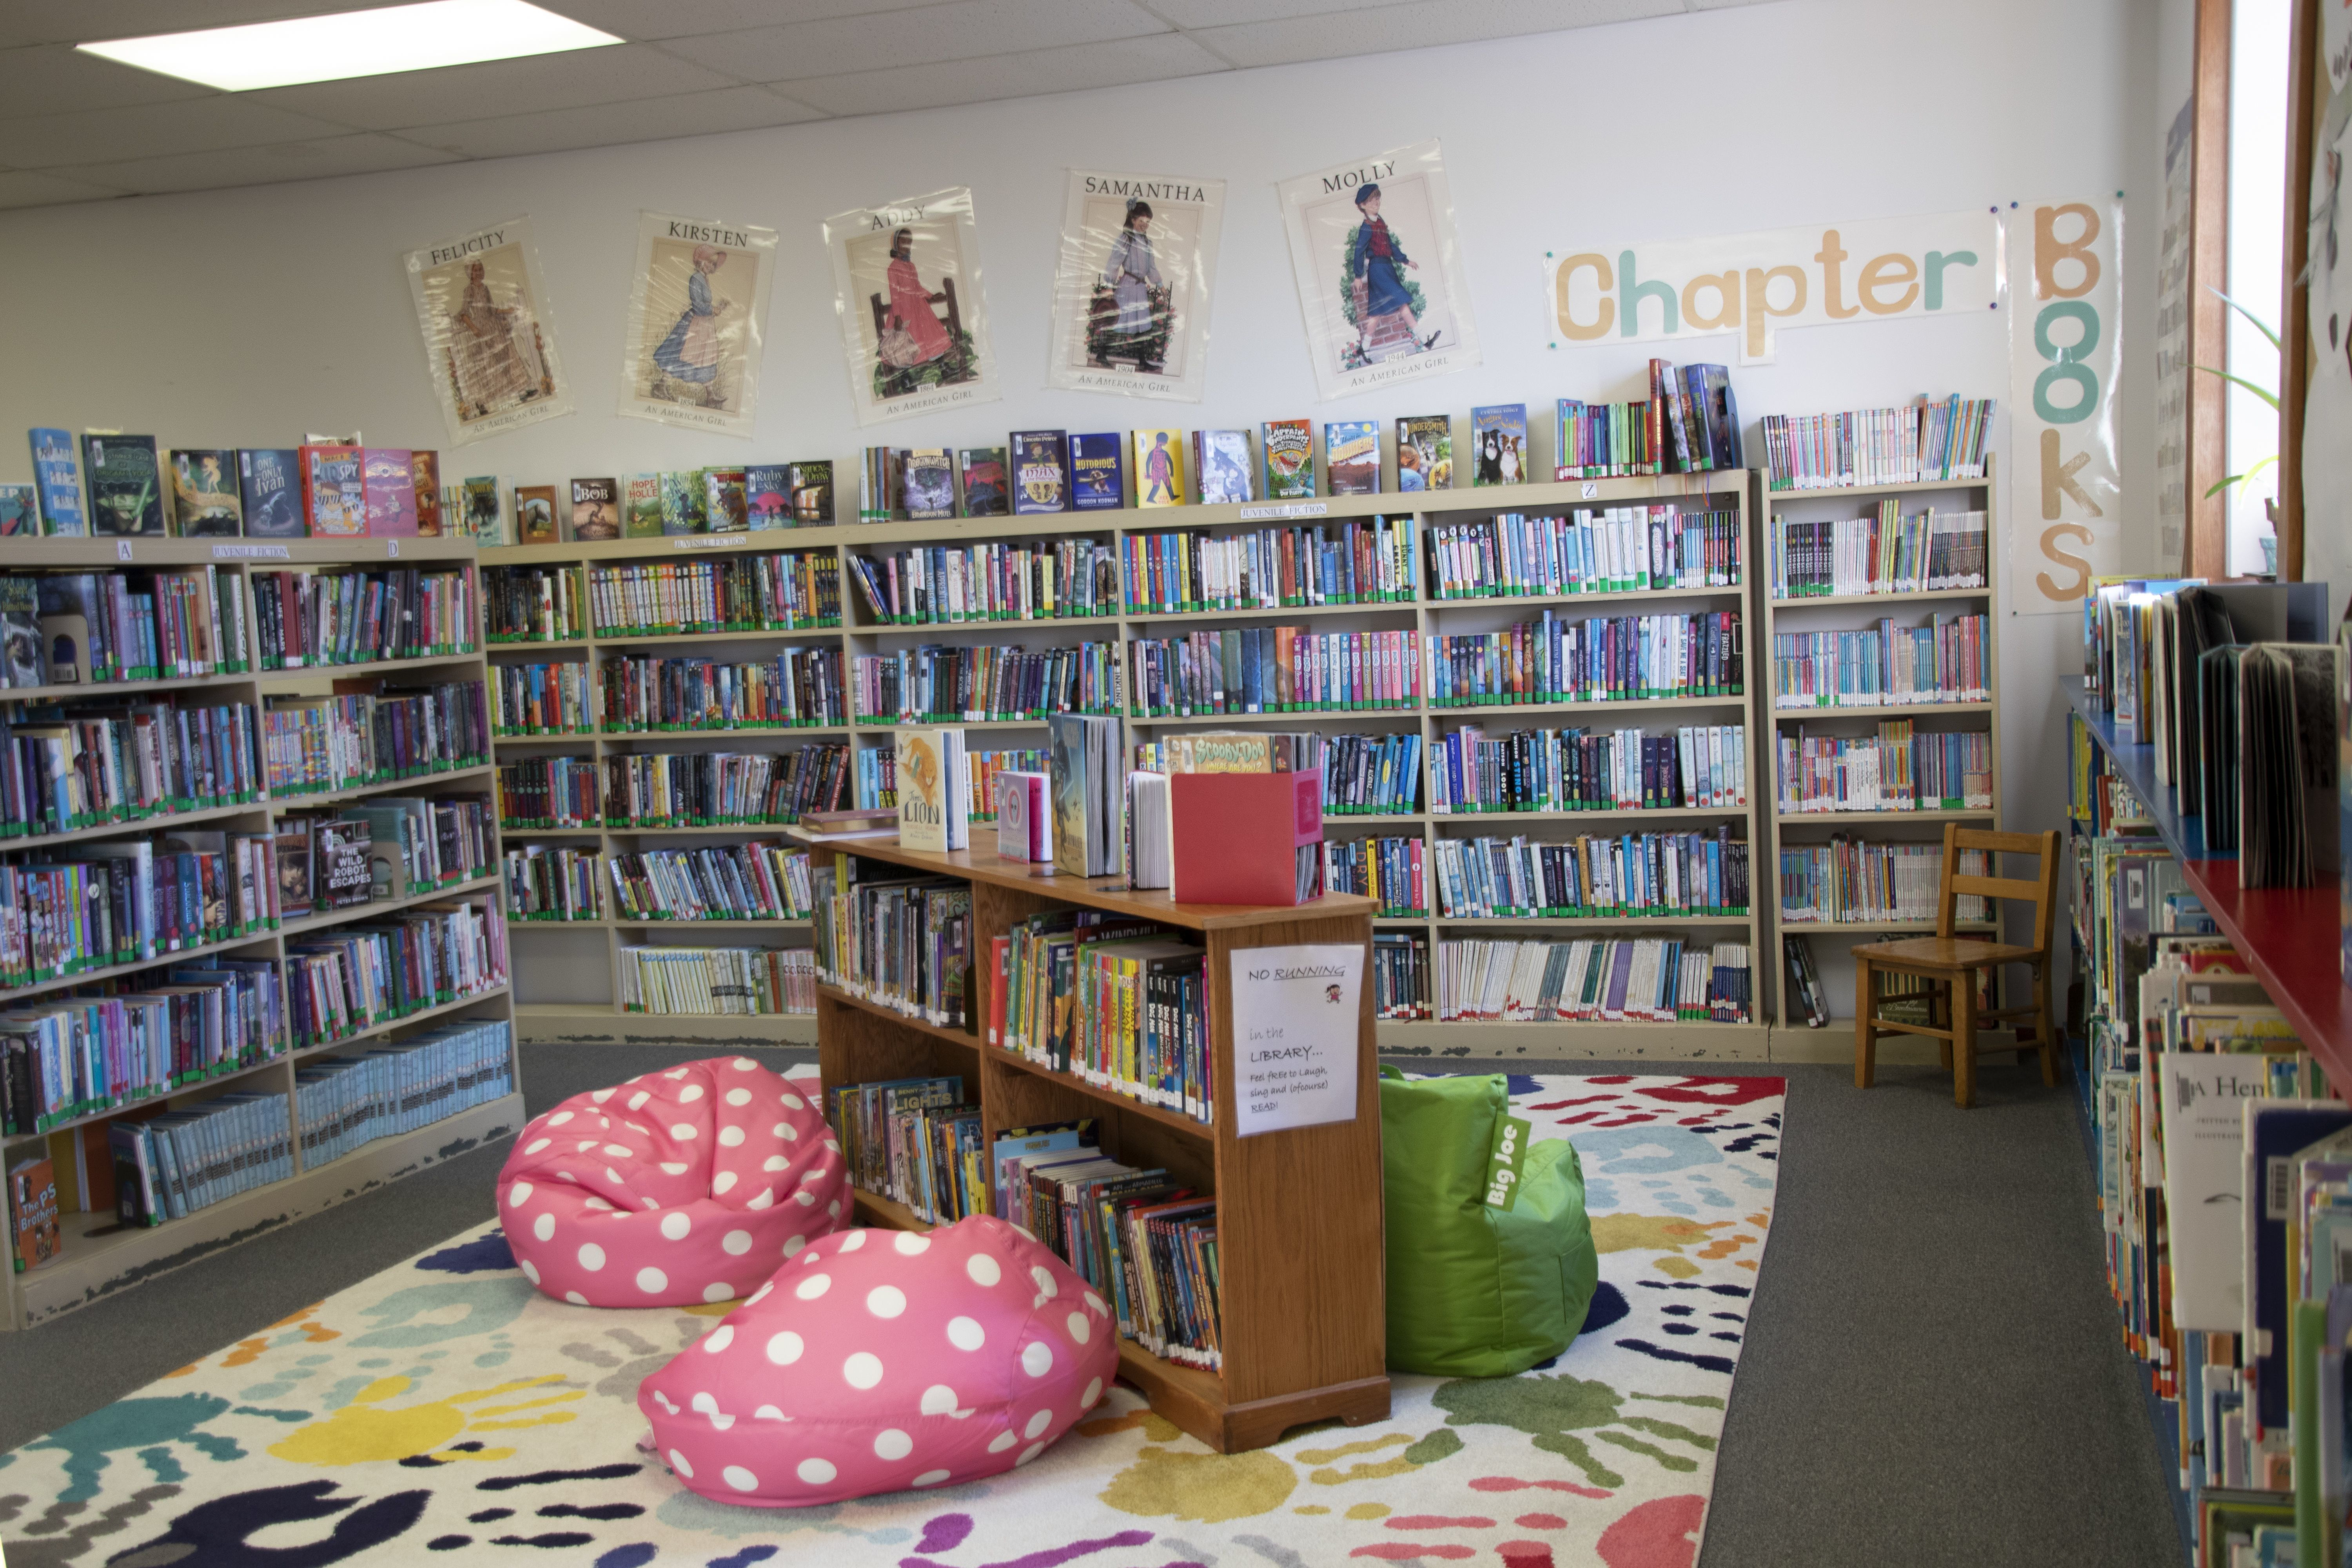 Using our libraries now more than ever